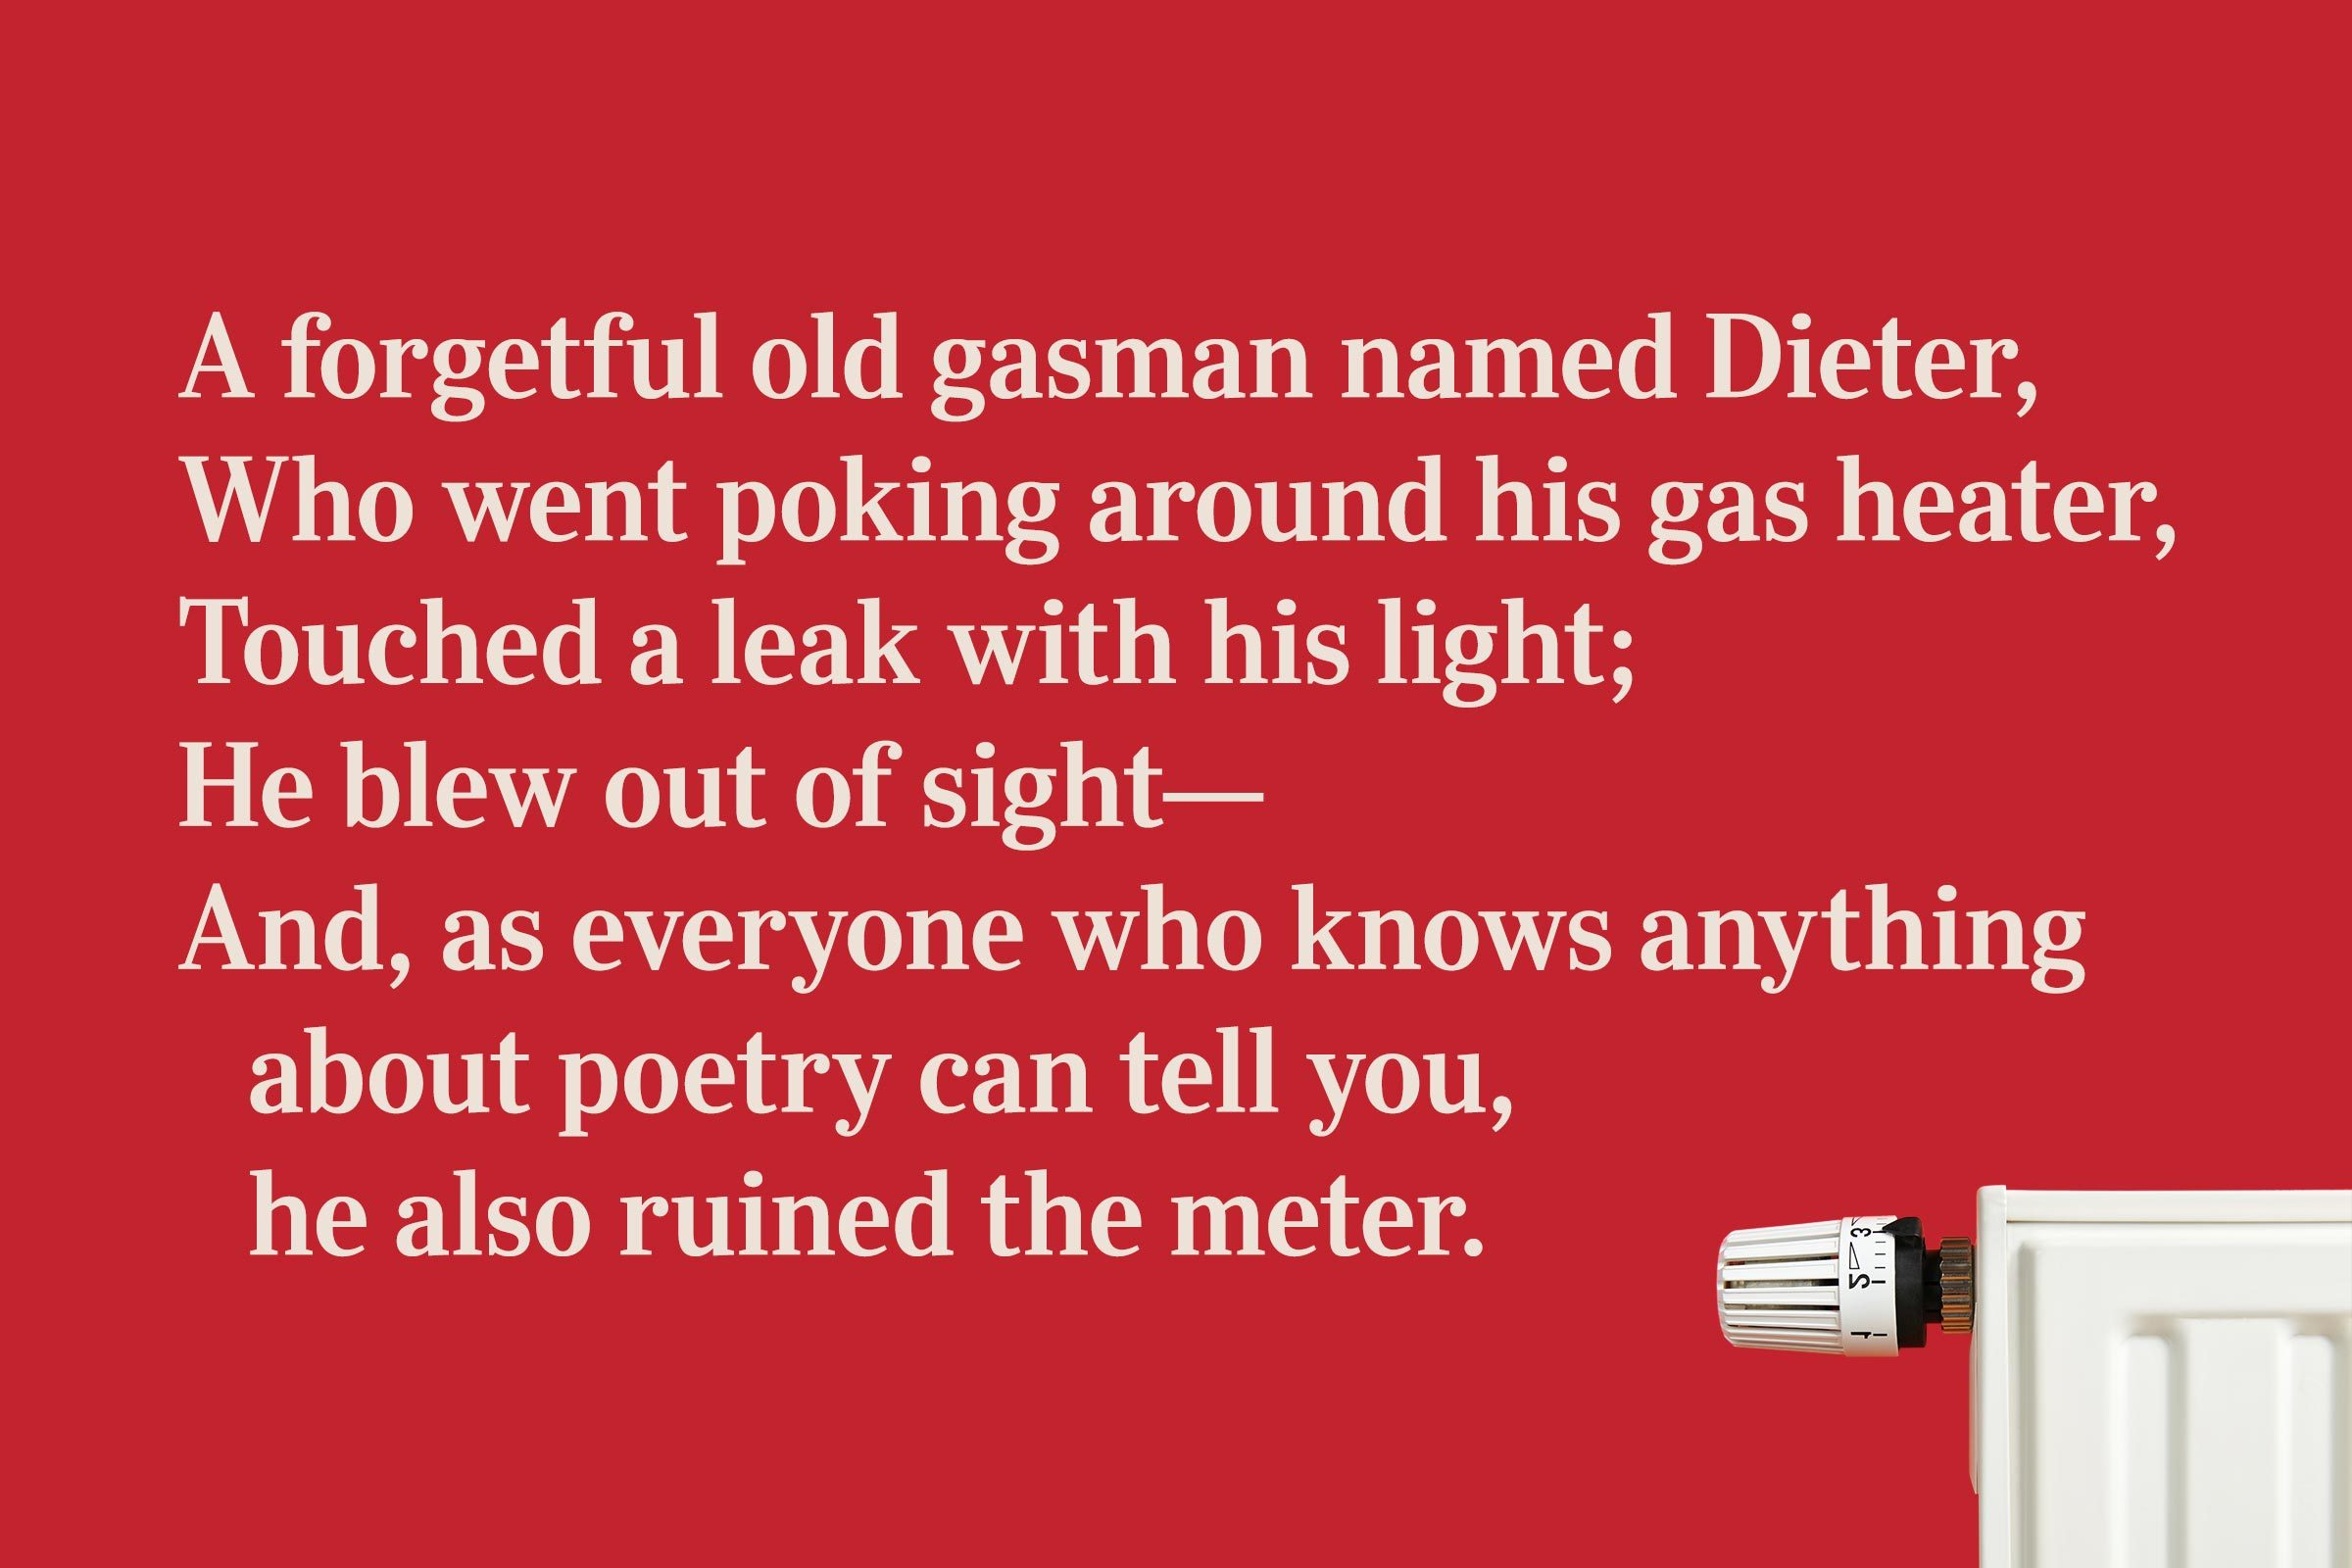 A forgetful old gasman named Dieter, / Who went poking around his gas heater, / Touched a leak with his light; / He blew out of sight— / And, as everyone who knows anything about poetry can tell you, he also ruined the meter.